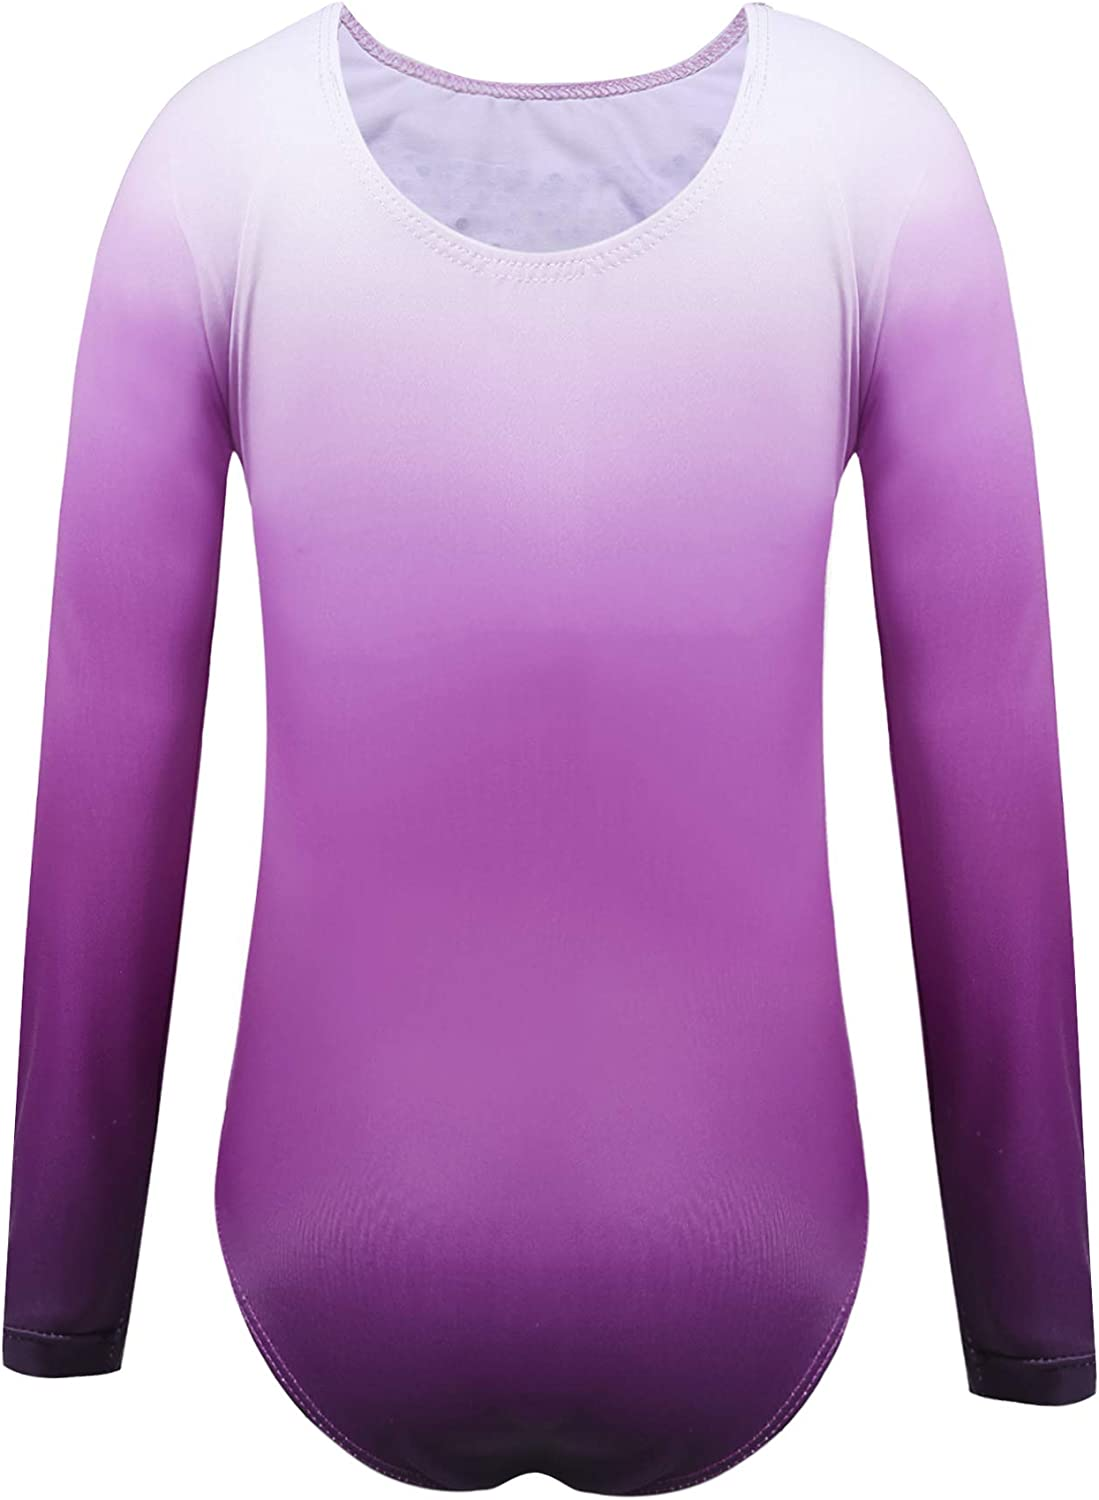 Zaclotre Kid Girls Gymnastic Leotard Long Sleeve Color Gradient Sparkly Ballet Dance One Piece Outfit